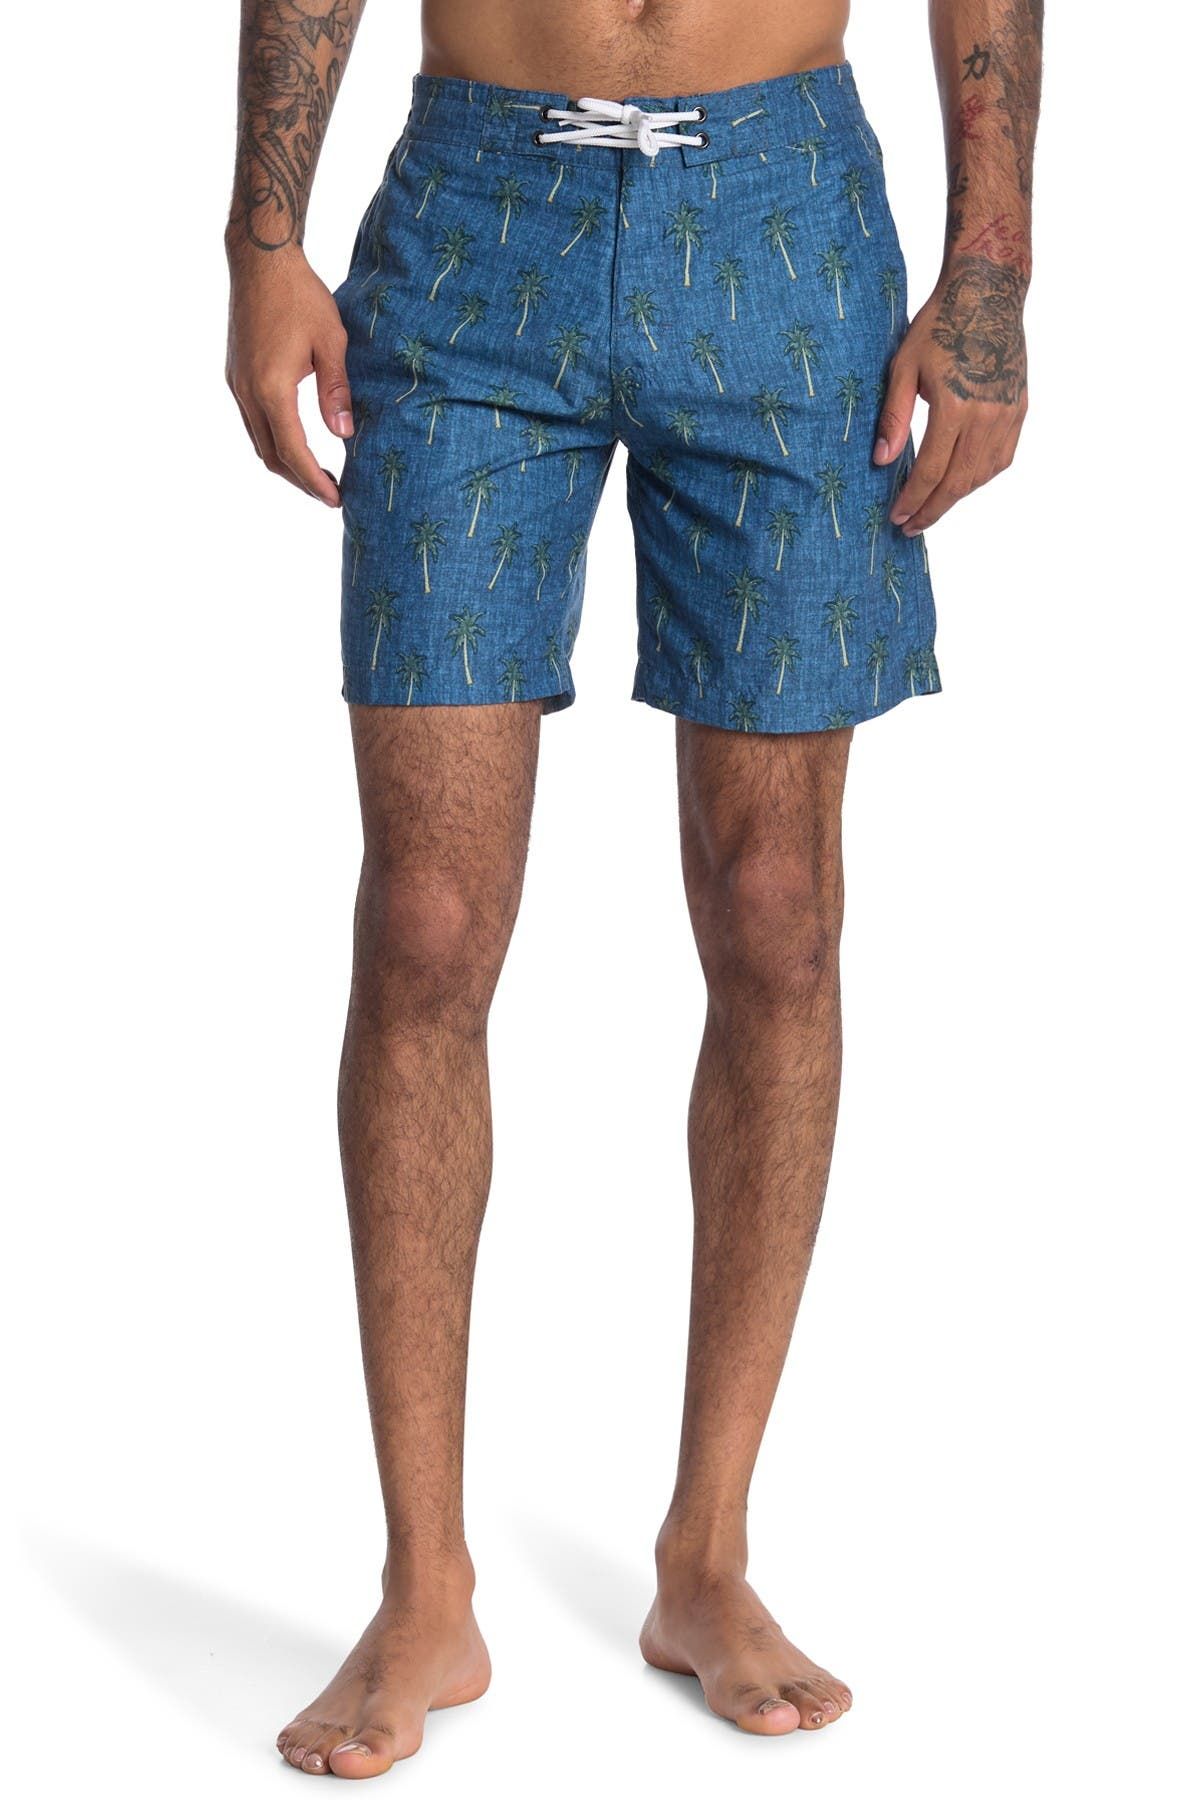 Image of Trunks Surf and Swim CO. Swami Palm Tree Board Shorts